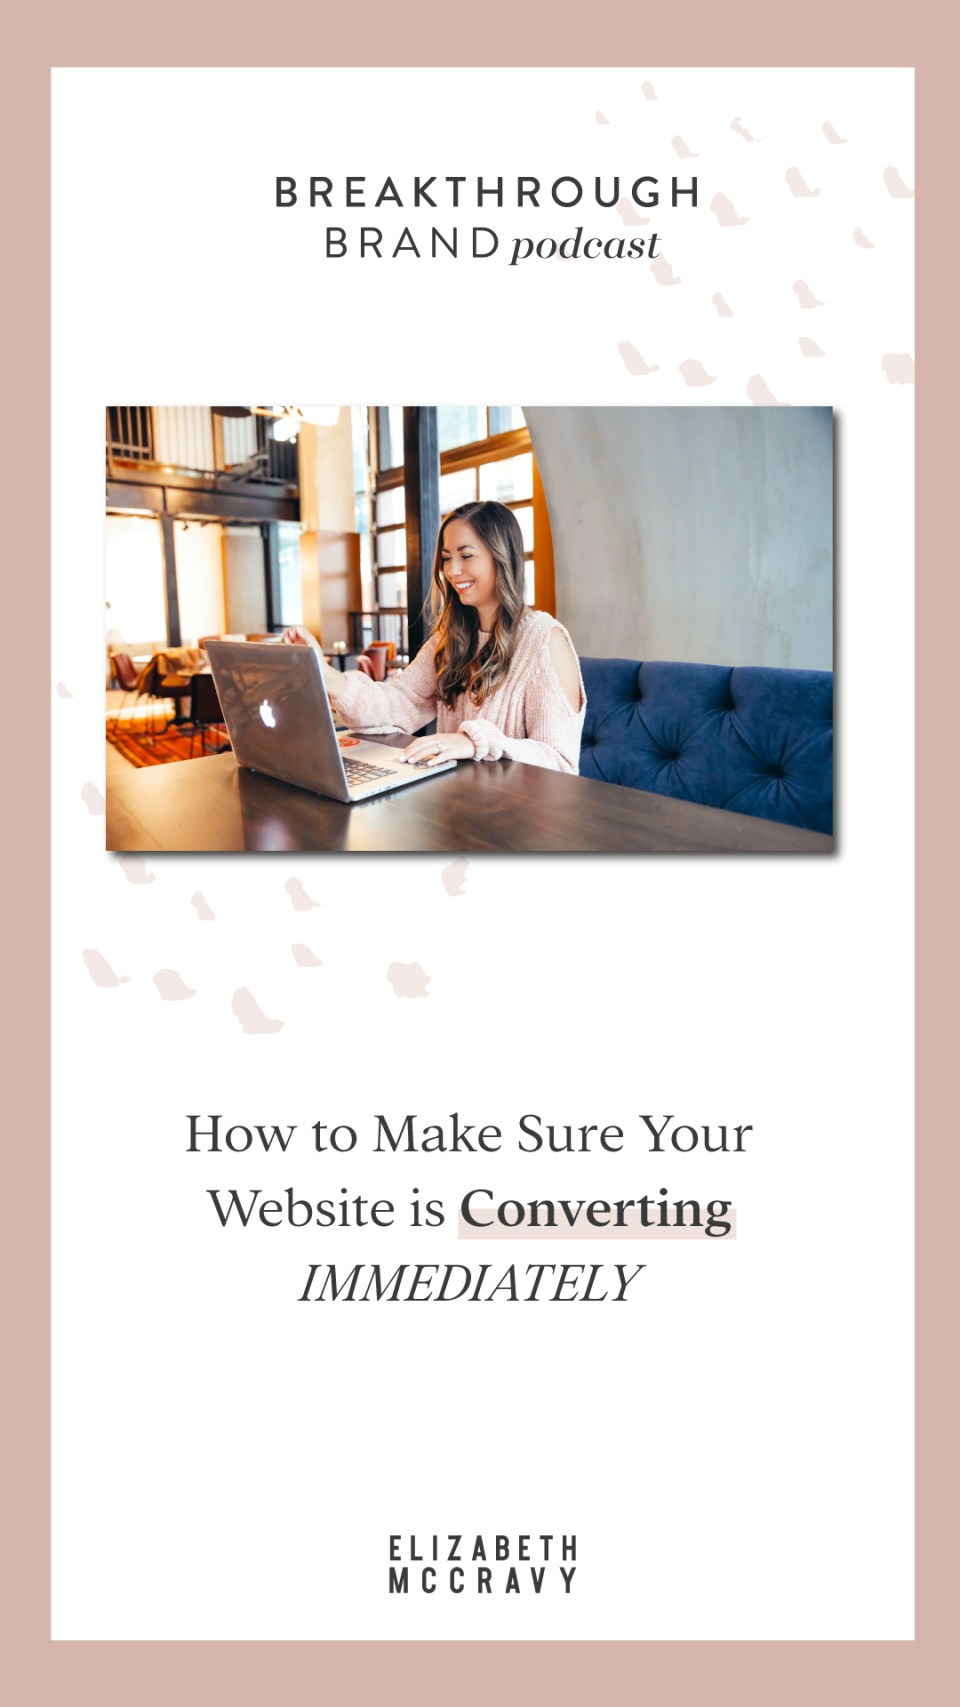 How to Make Sure Your Website is Converting IMMEDIATELY: Most of these tips are going to involve taking things OFF your website, not adding them. And these are all things you can do on your own without starting over on your website!